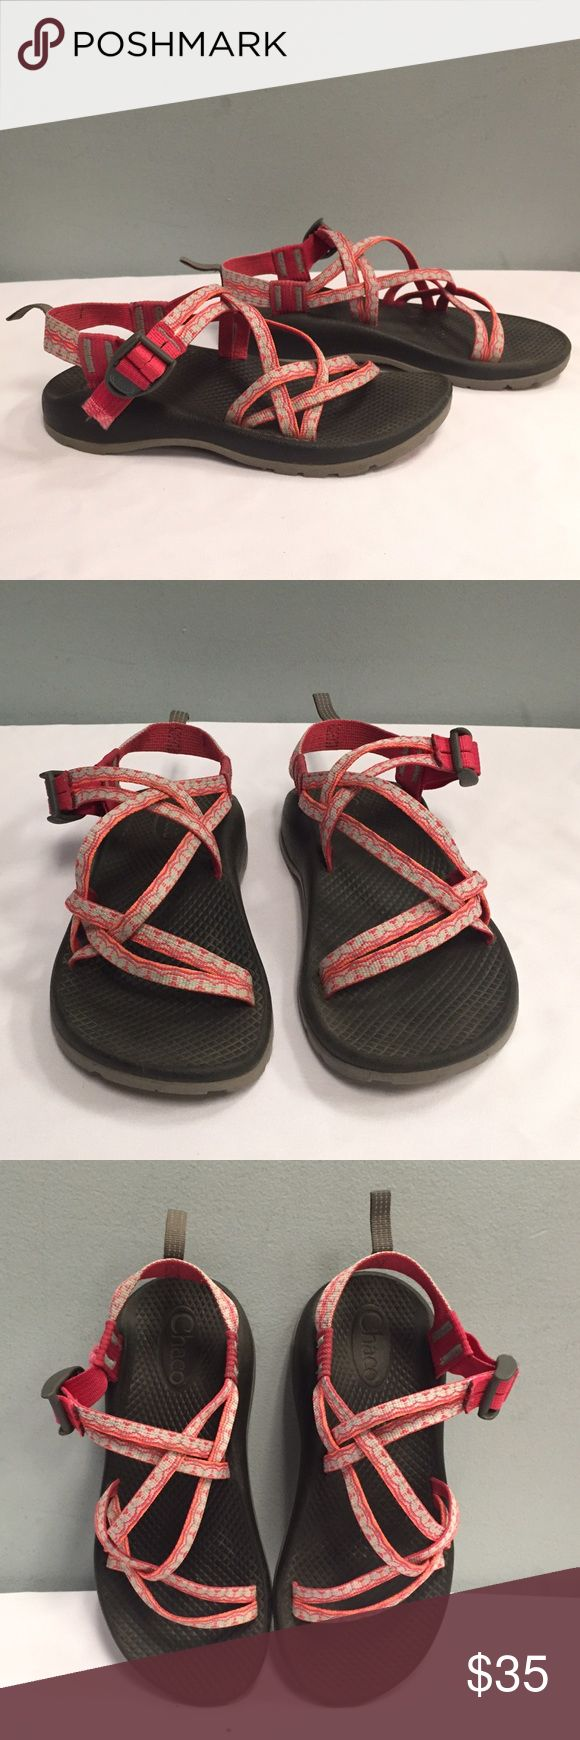 Women's Chaco Sandals, Pink, Size 5 Used, very good condition. Slight fraying on the end of the straps as pictured. Women's size 5. Will review all offers! Chaco Shoes Sandals